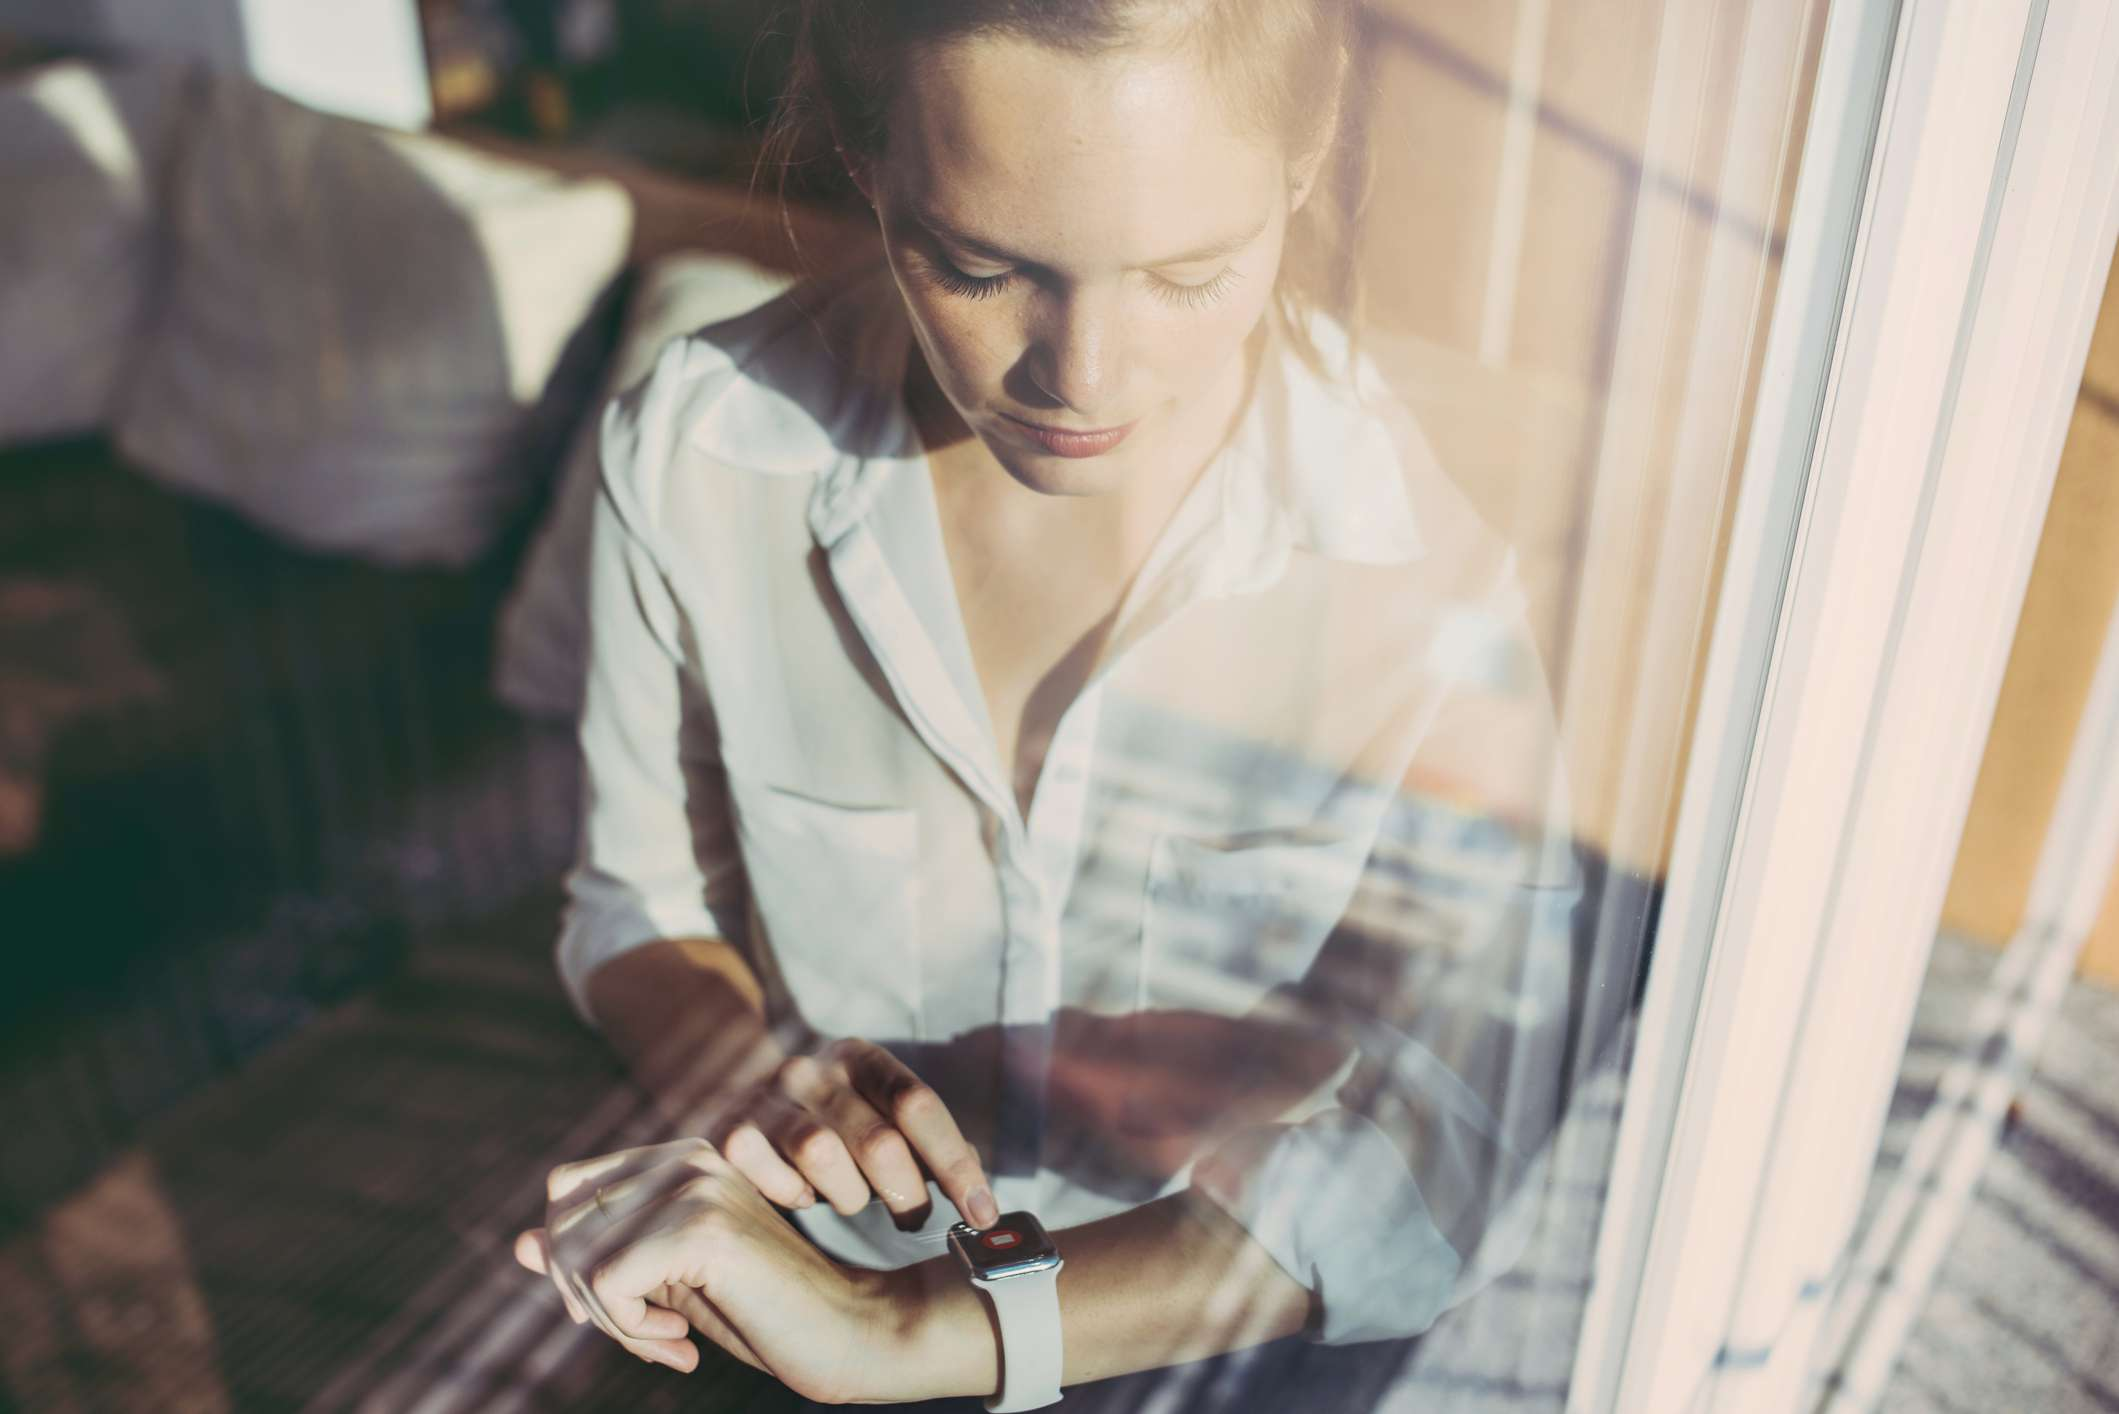 Woman at window looking at smart watch